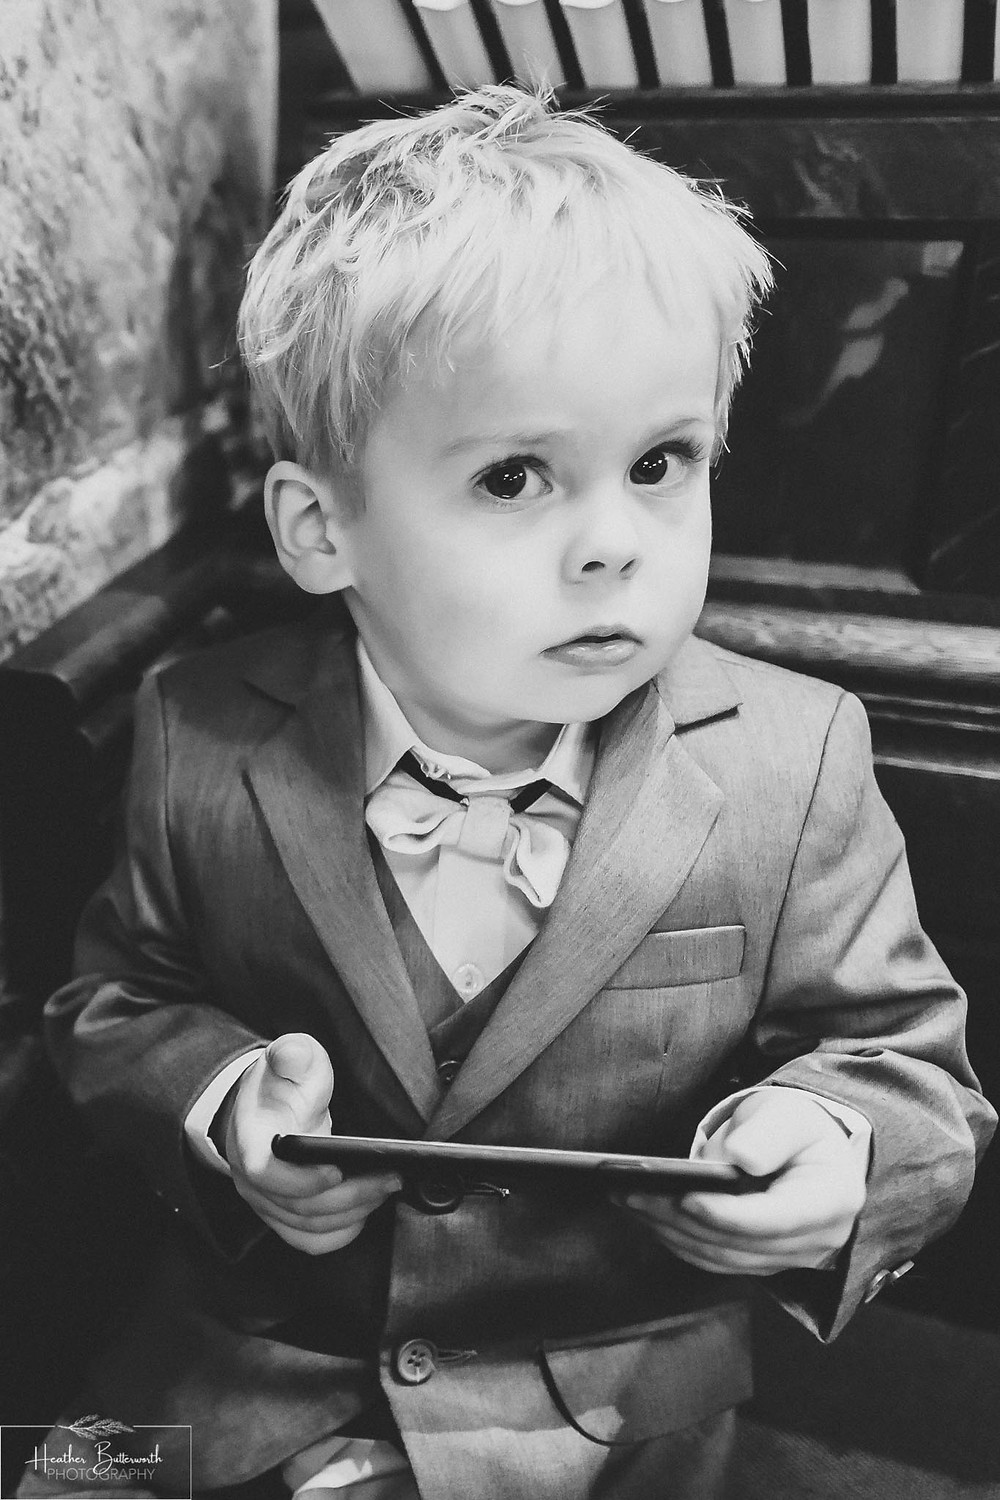 Page boy on caught on a mobile phone after the wedding at Adel Parish Church in Leeds, Yorkshire